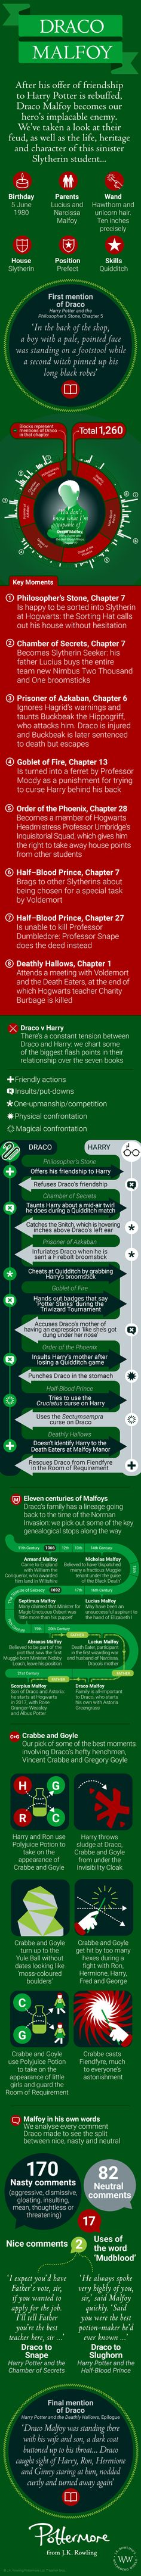 All About Draco Malfoy